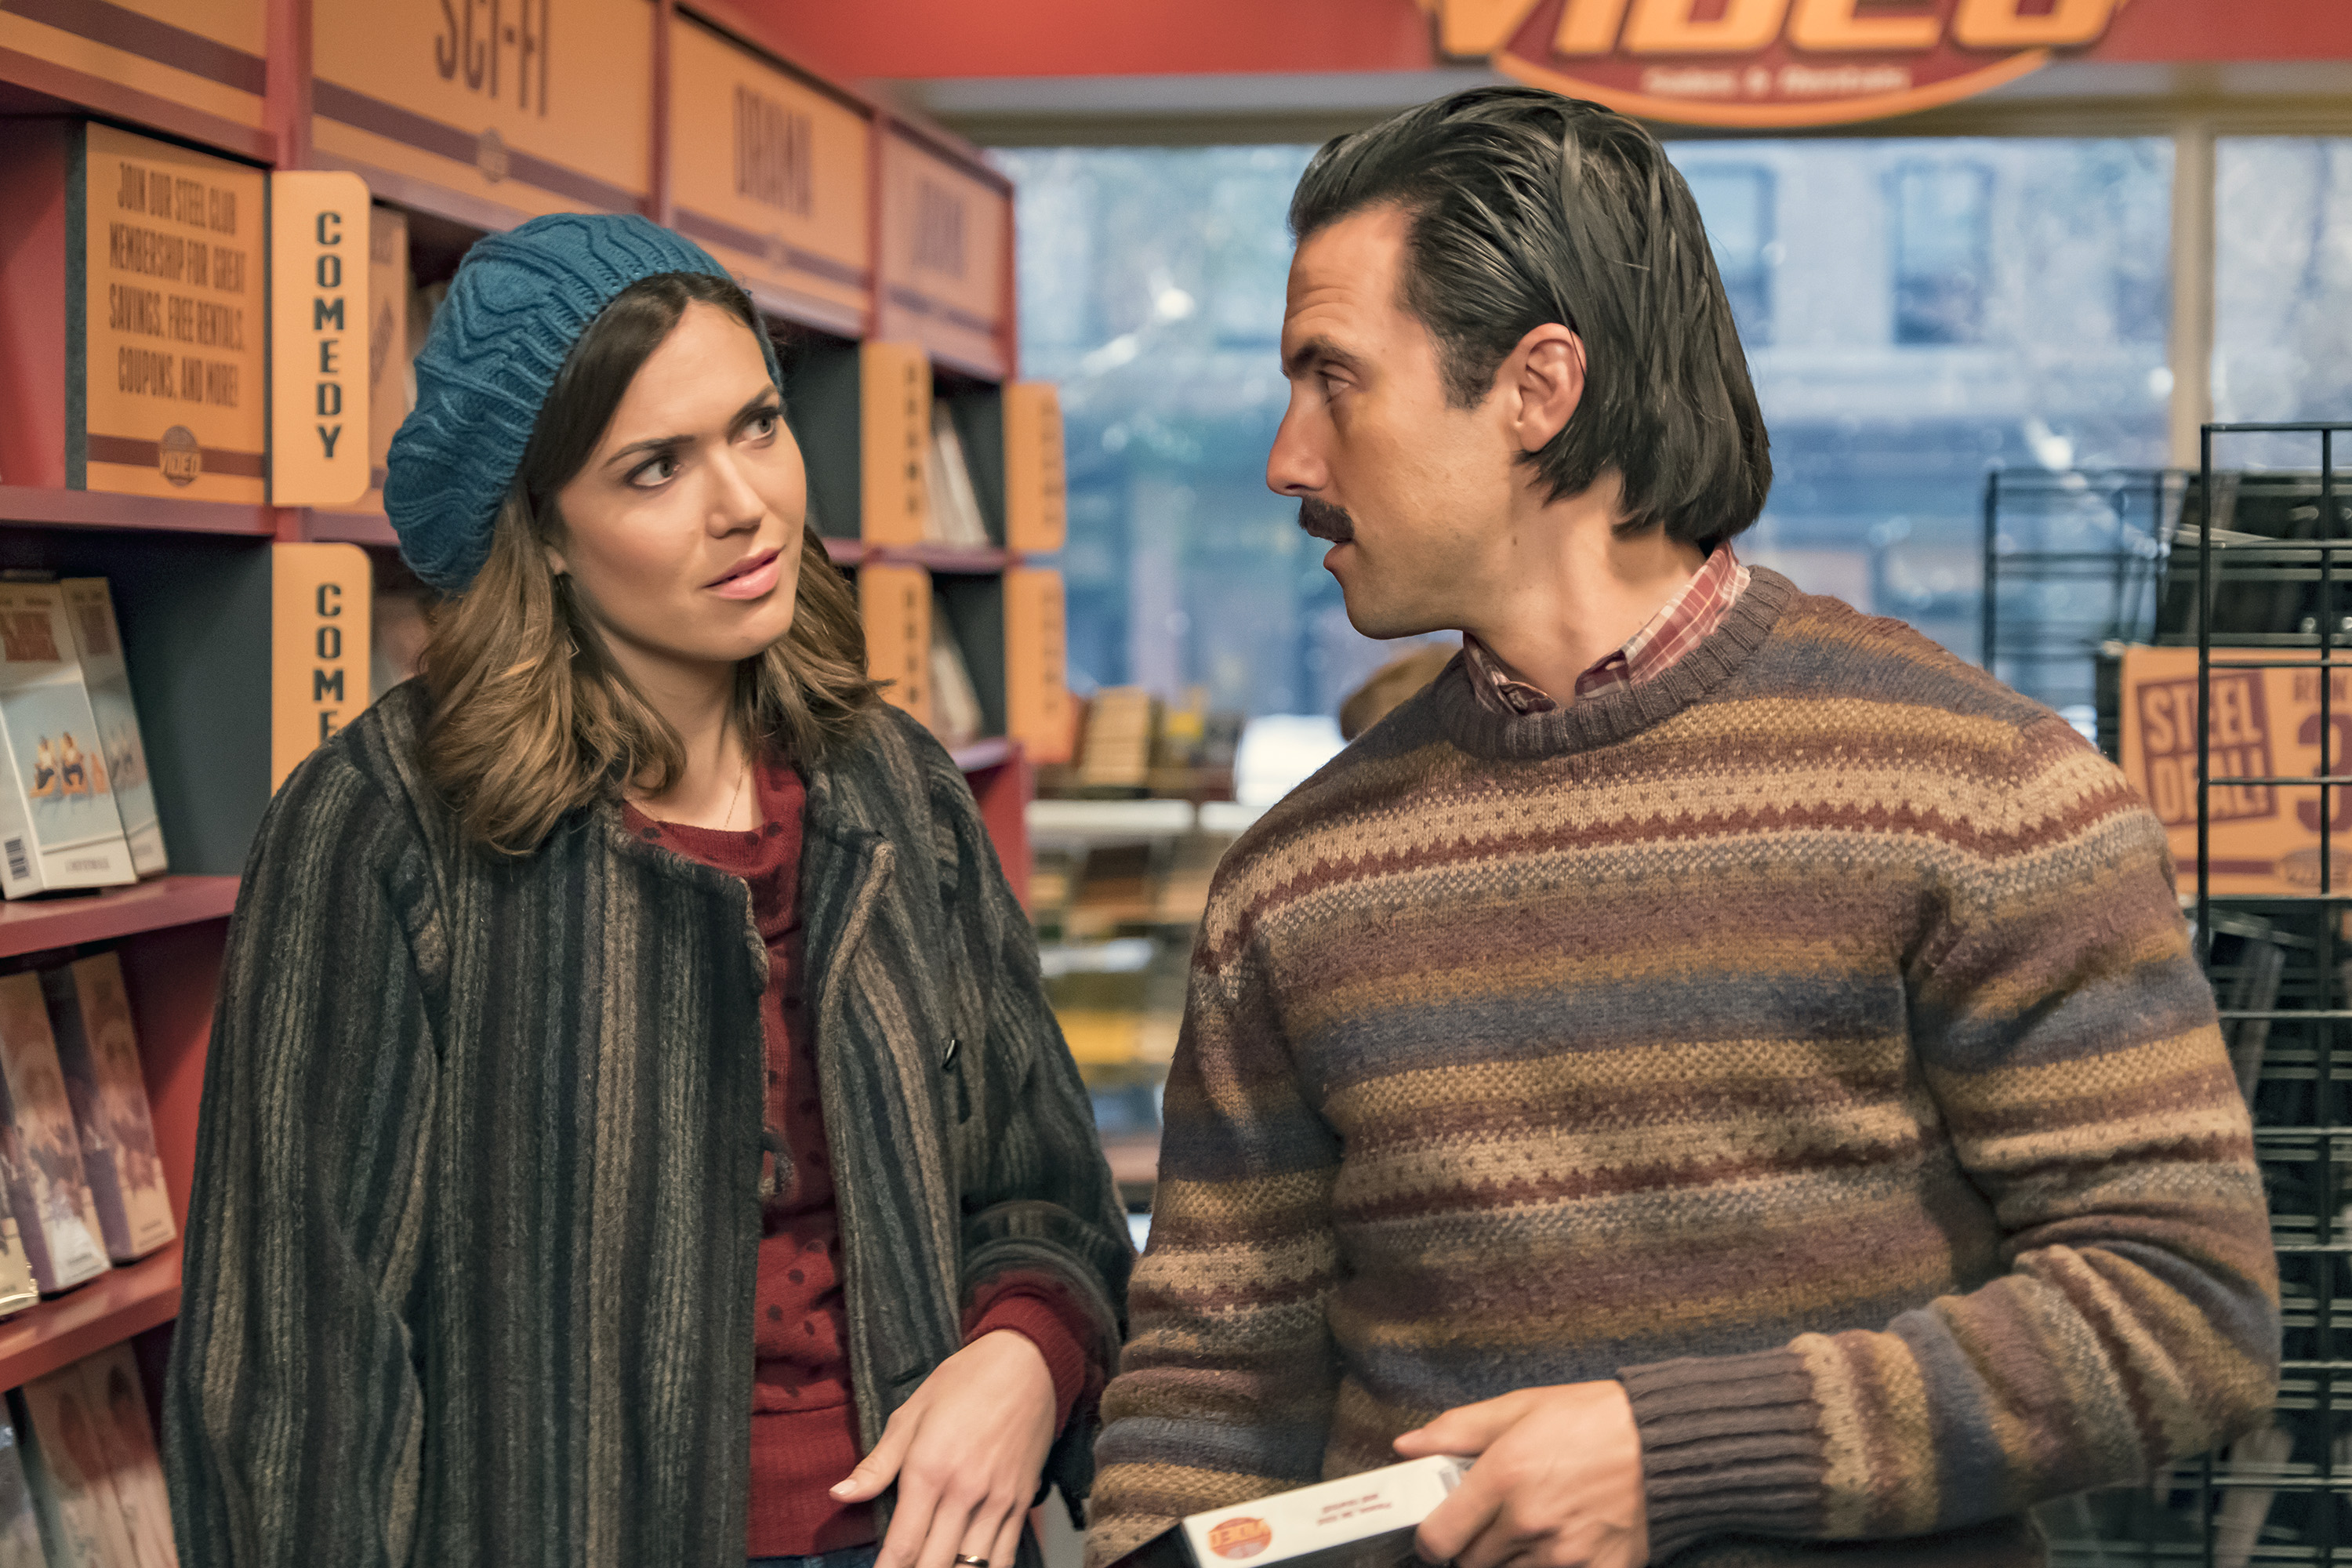 Mandy Moore as Rebecca Pearson and Milo Ventimiglia as Jack Pearson in season 2 of This Is Us.